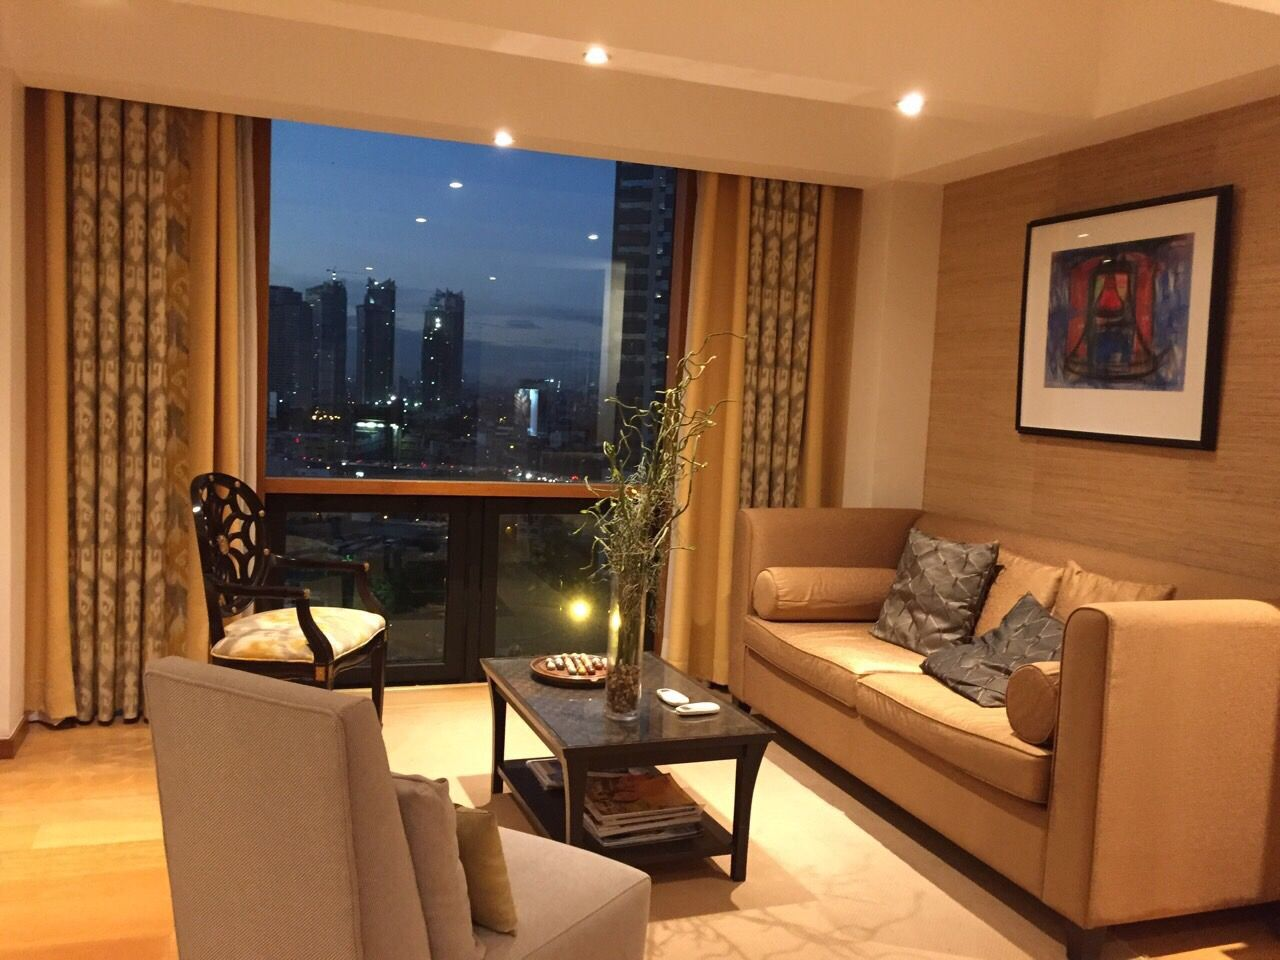 2 Bedroom Condo for Rent in BGC Taguig City, 113sqm